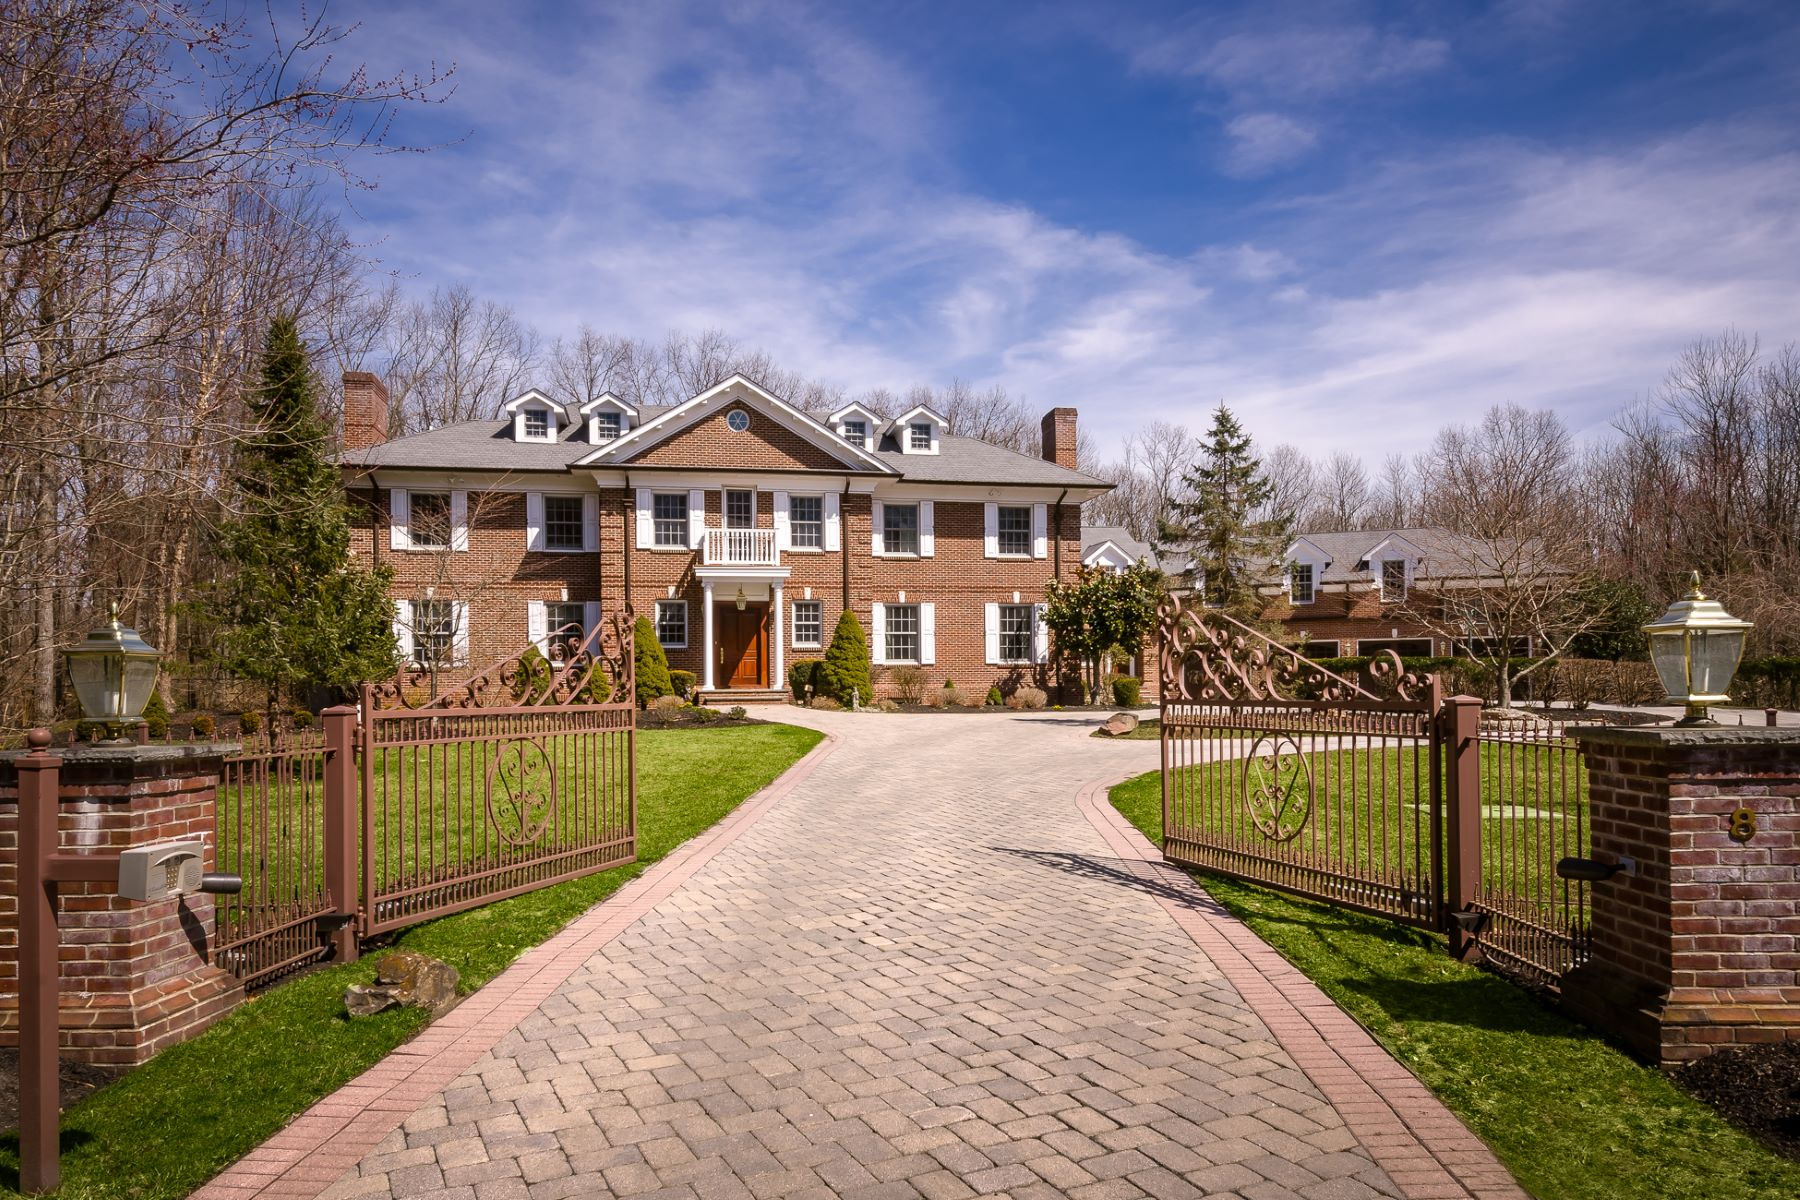 single family homes para Venda às Stonybrook Manor: Once-in-a-Lifetime Magnificence 8 Players Lane, Princeton, Nova Jersey 08540 Estados Unidos